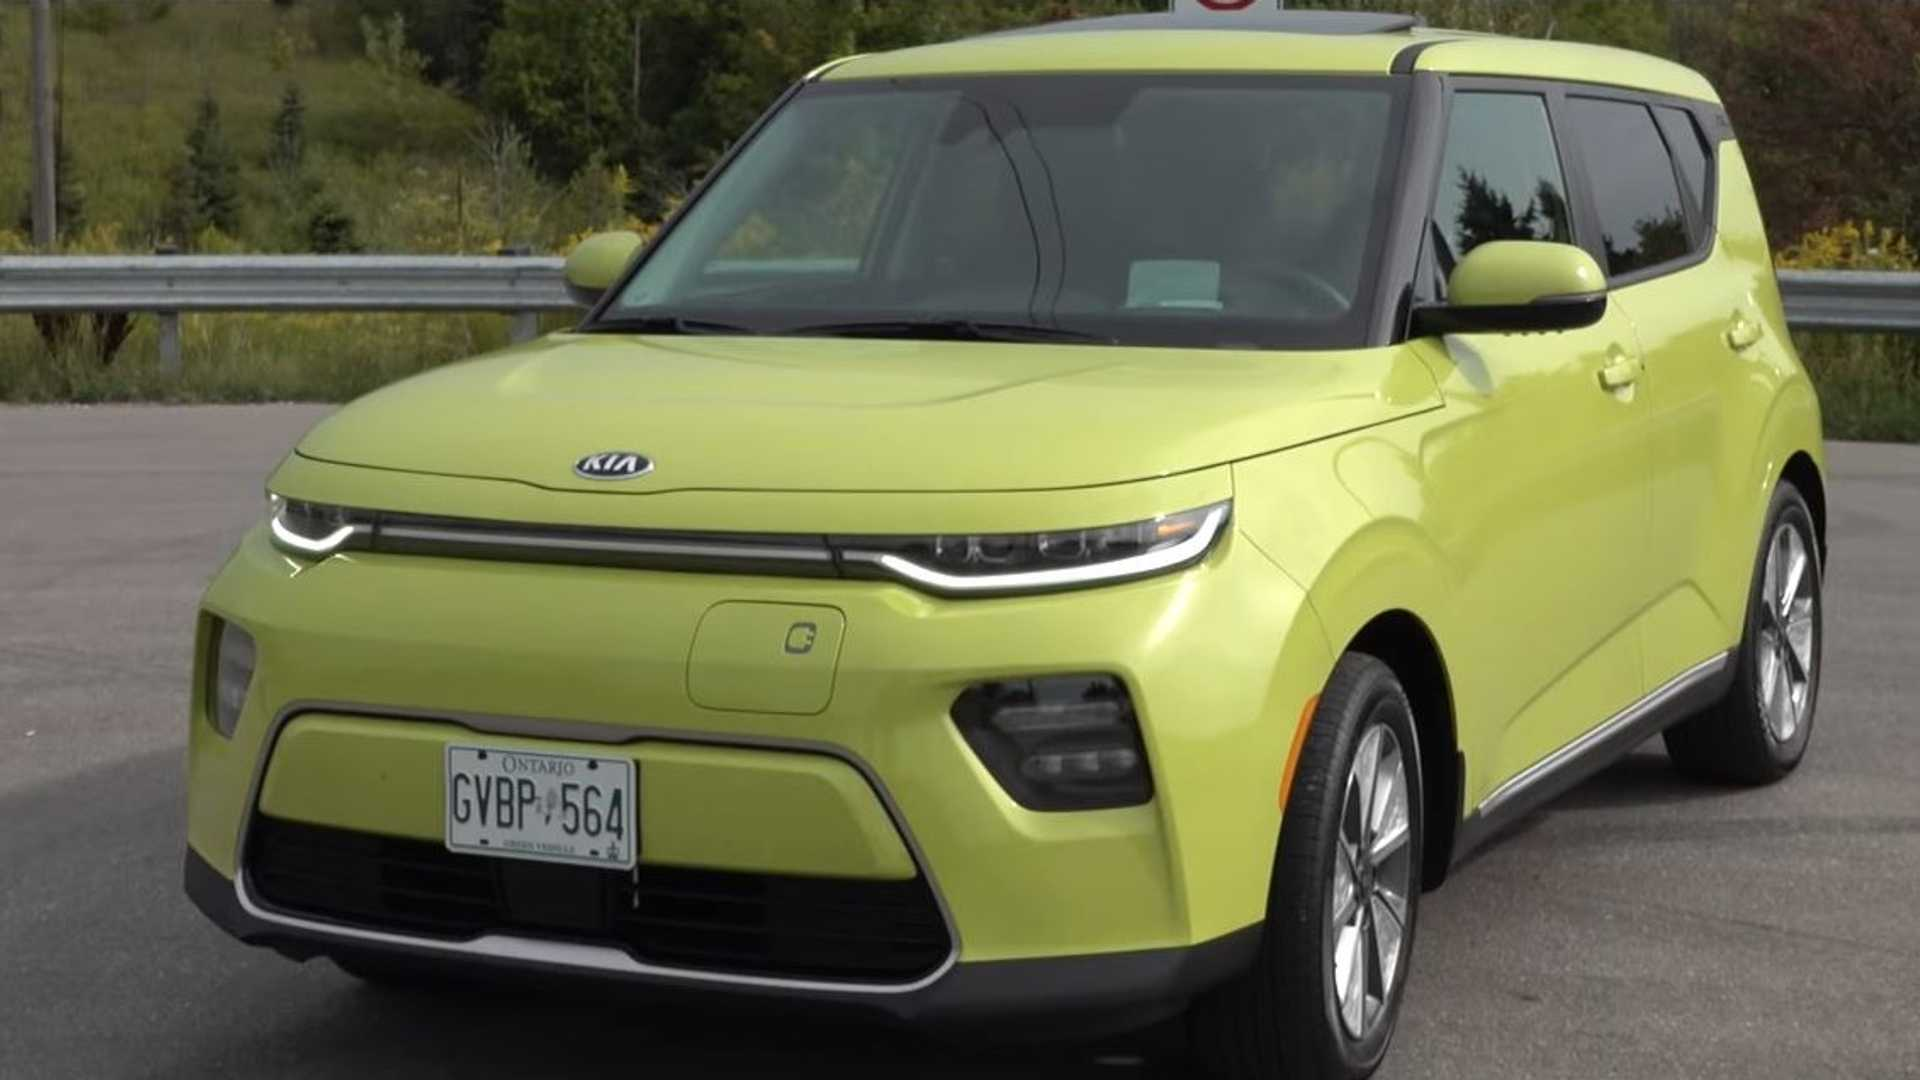 2020 Kia Soul Full Review >> All New 64 Kwh 2020 Kia Soul Ev Detailed Review Video